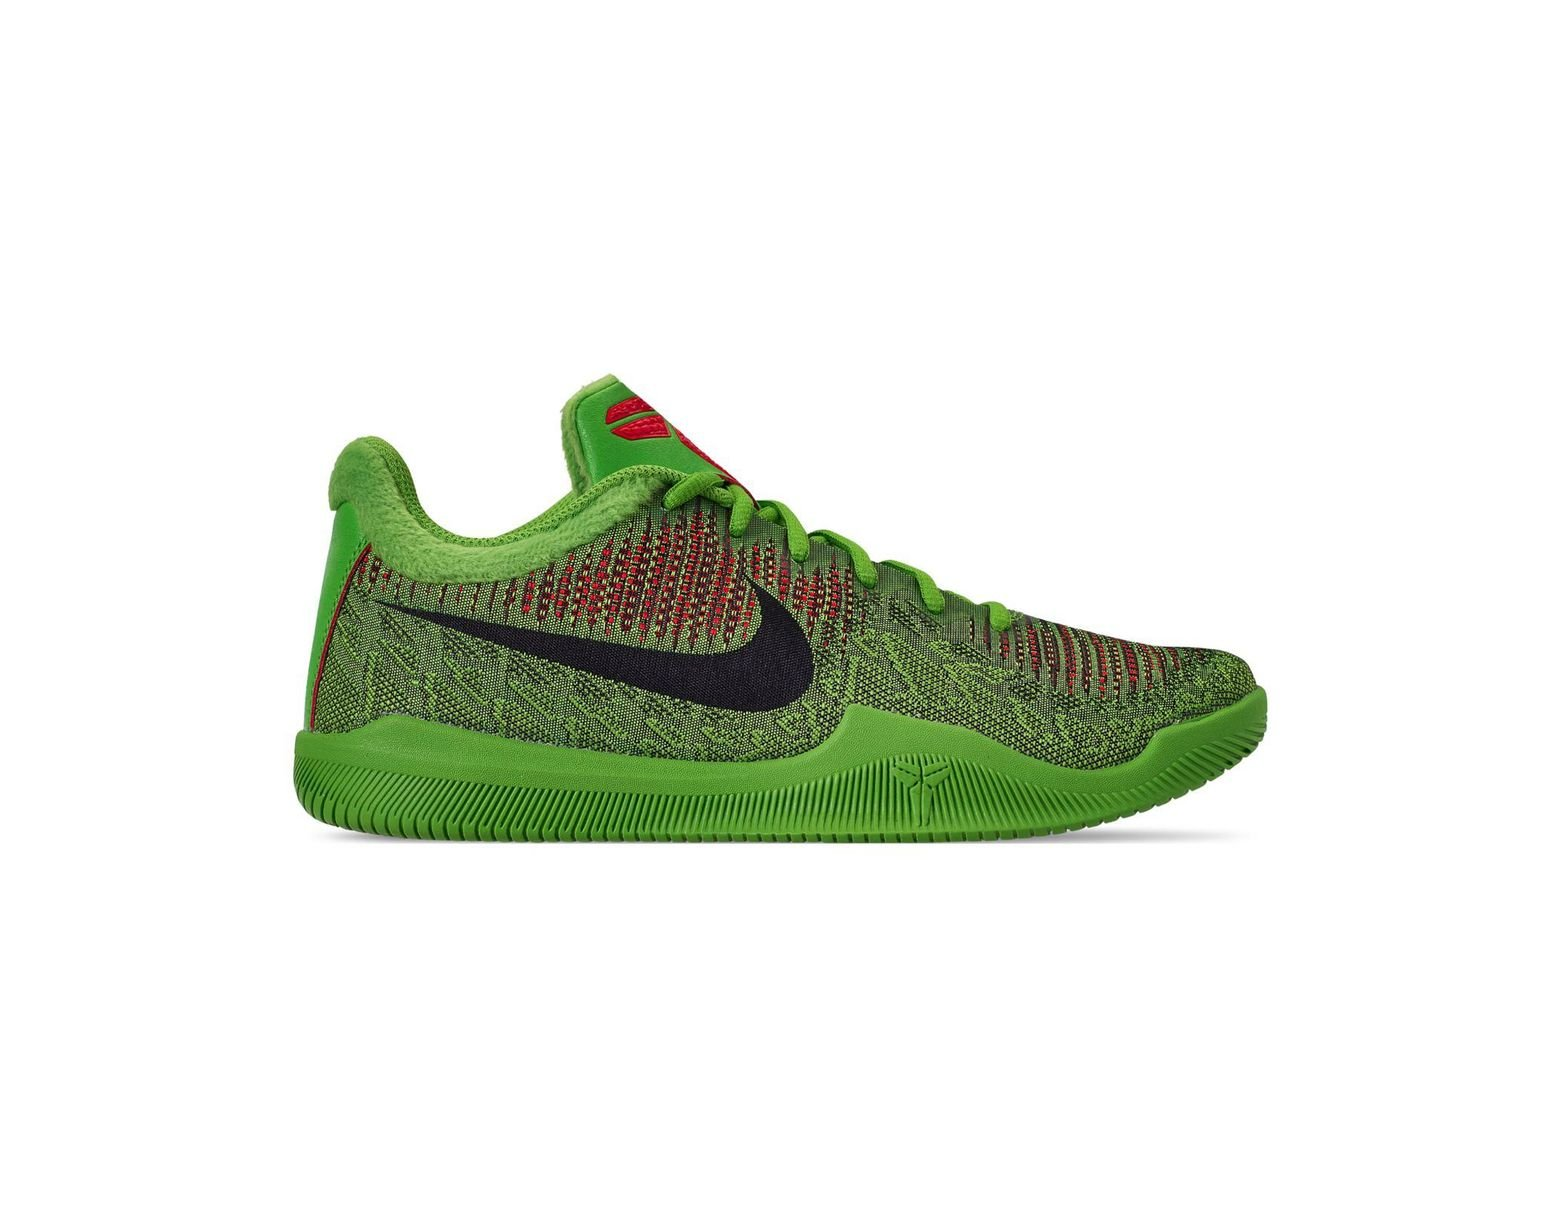 buy popular 936a8 3ffdd Nike Kobe Mamba Rage Basketball Sneakers From Finish Line in Green for Men  - Lyst